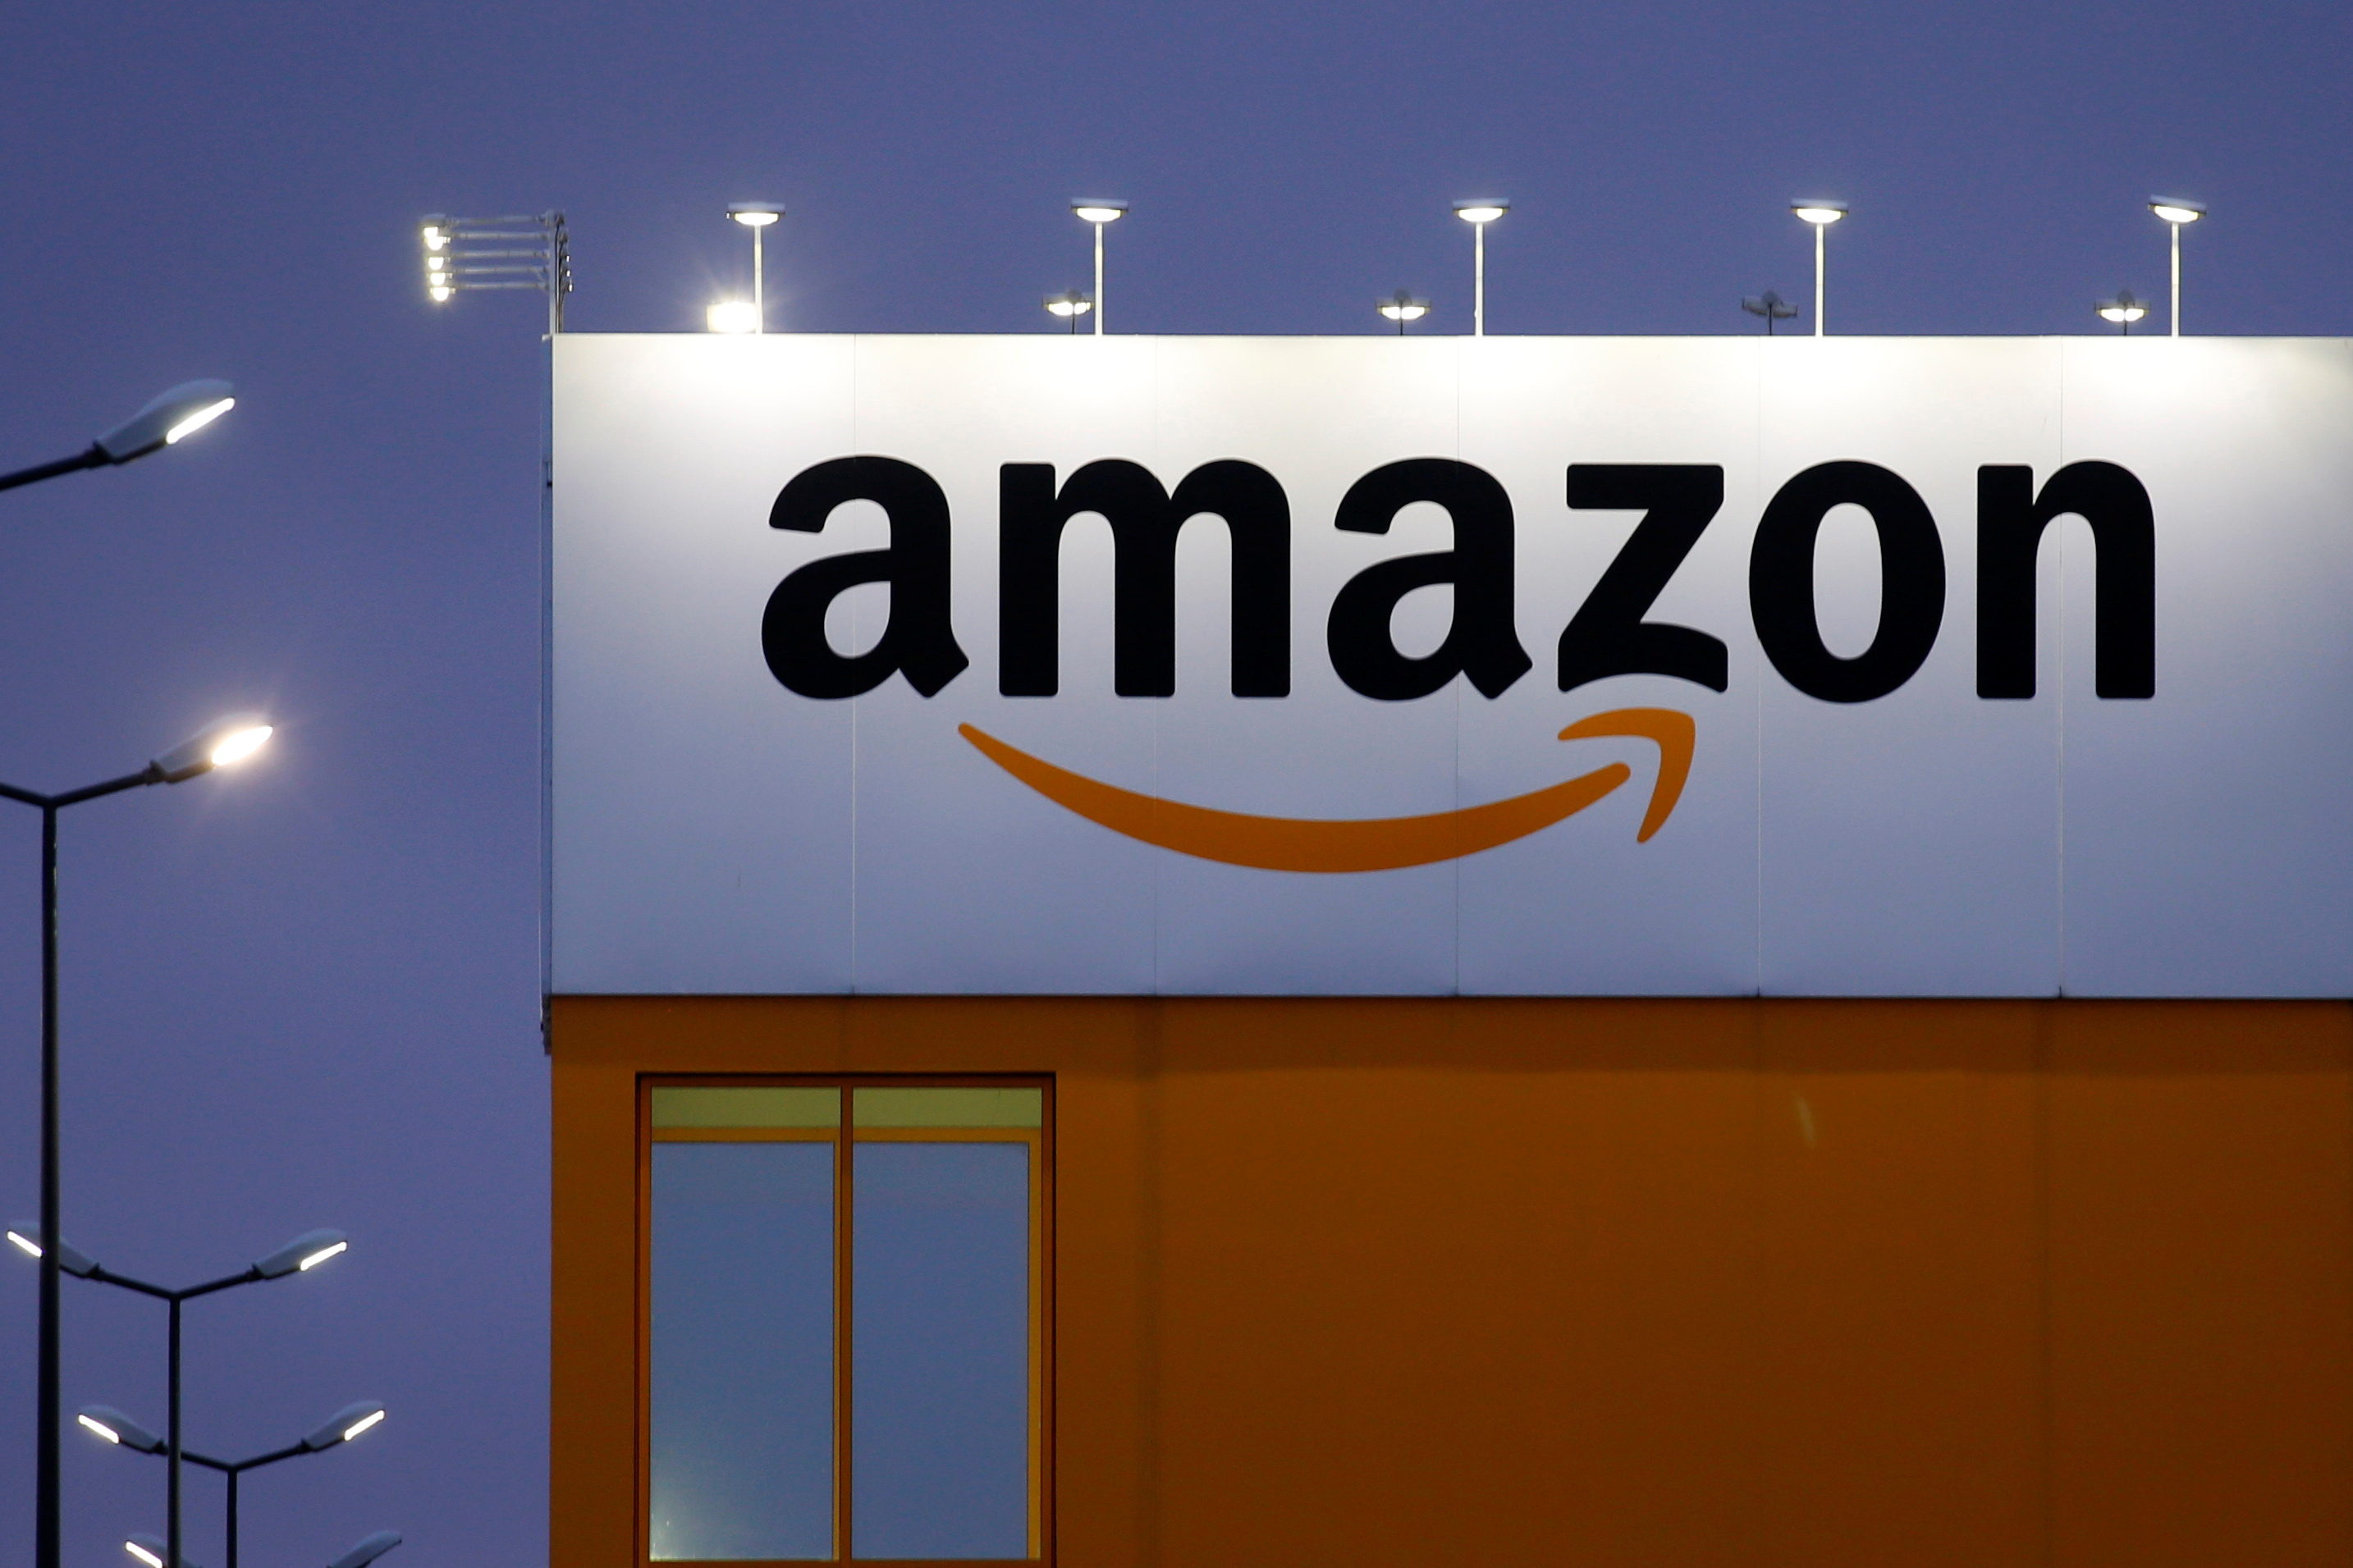 The logo of Amazon is seen at the company logistics center in Lauwin-Planque, northern France, February 20, 2017. REUTERS/Pascal Rossignol